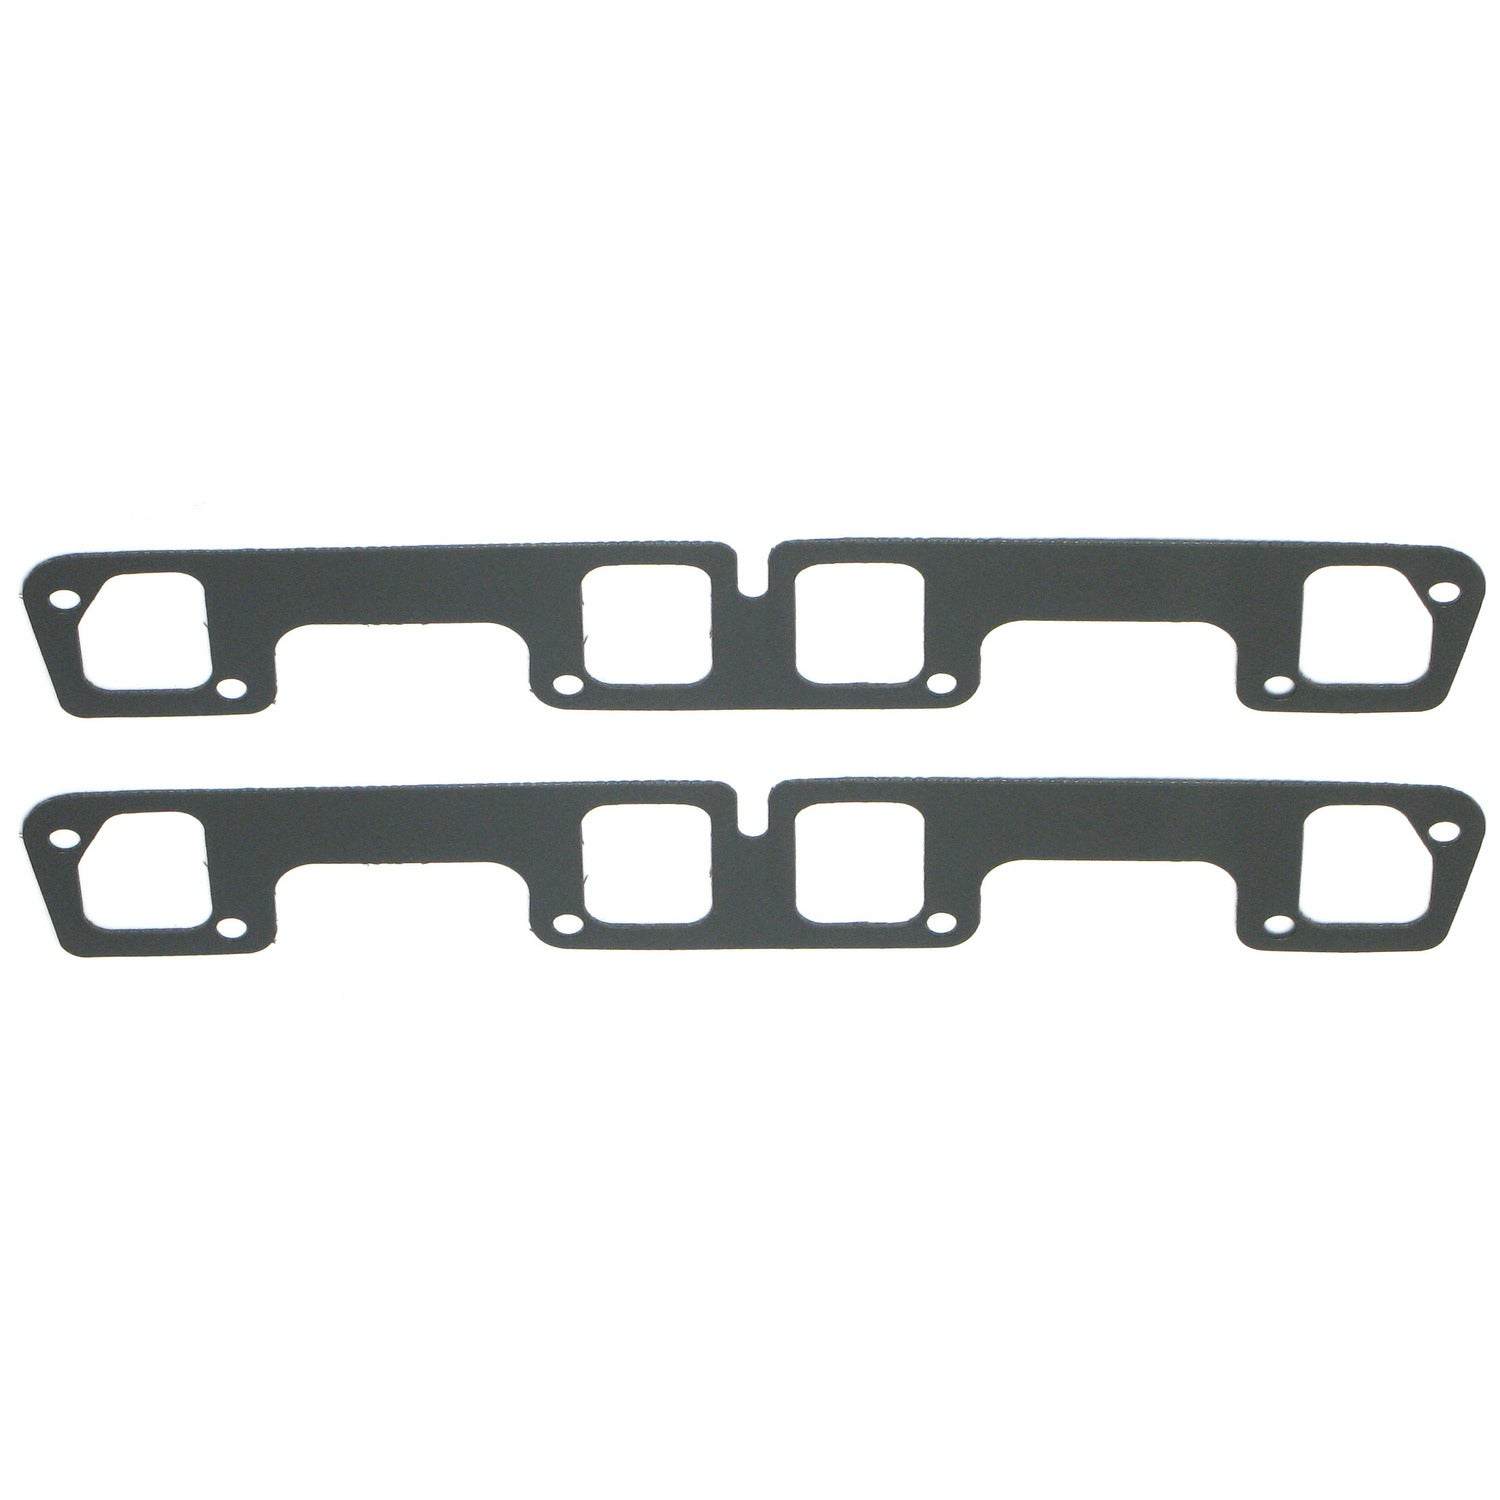 "Doug's Headers HG9401 Buick 400-455 1 7/8"" SAP (same as port) Header Flange Gaskets"